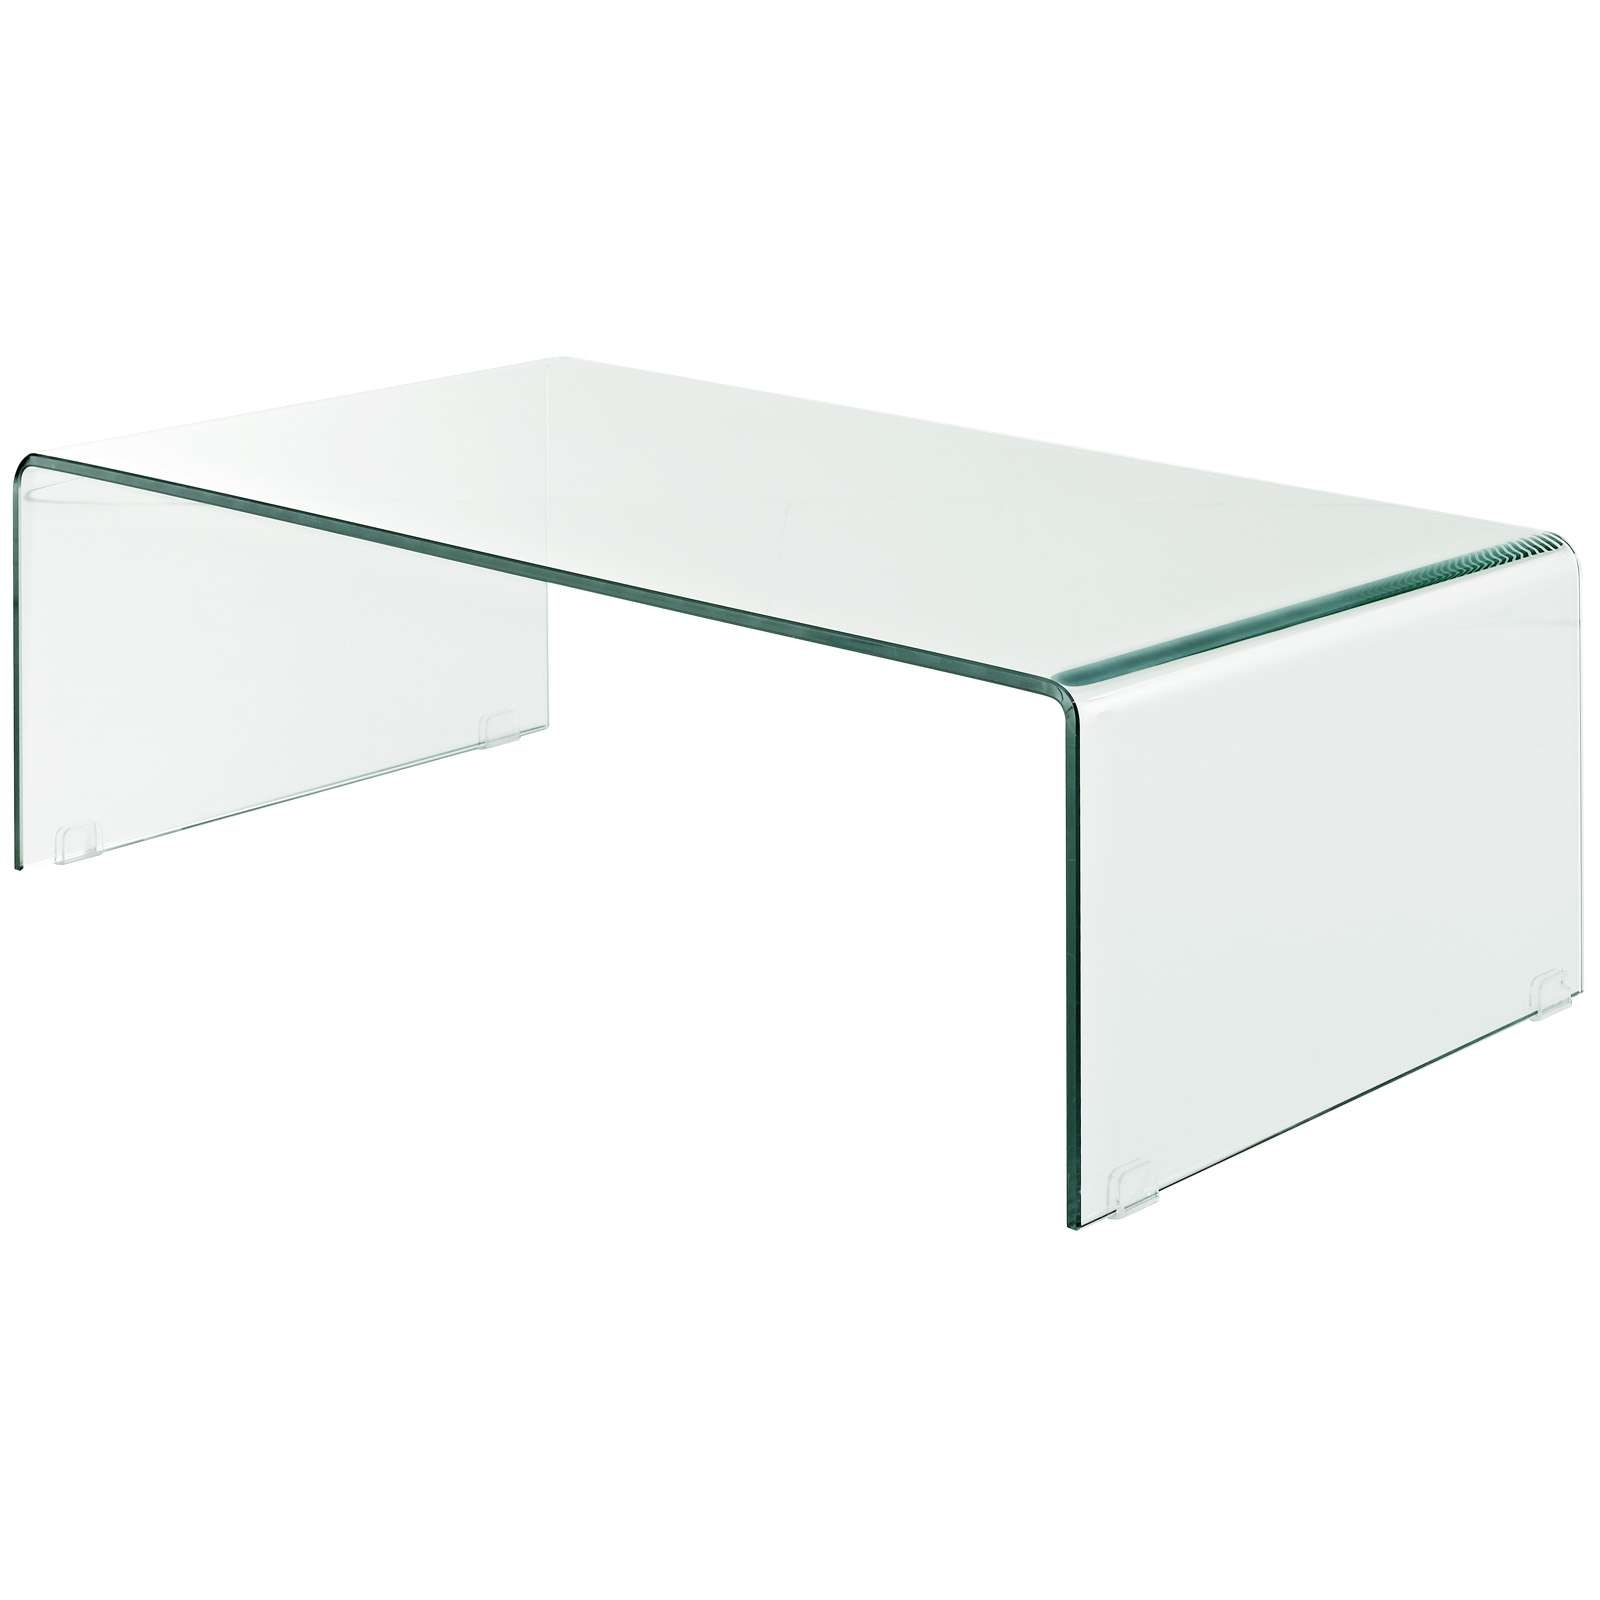 Top 20 of Simple Glass Coffee Tables